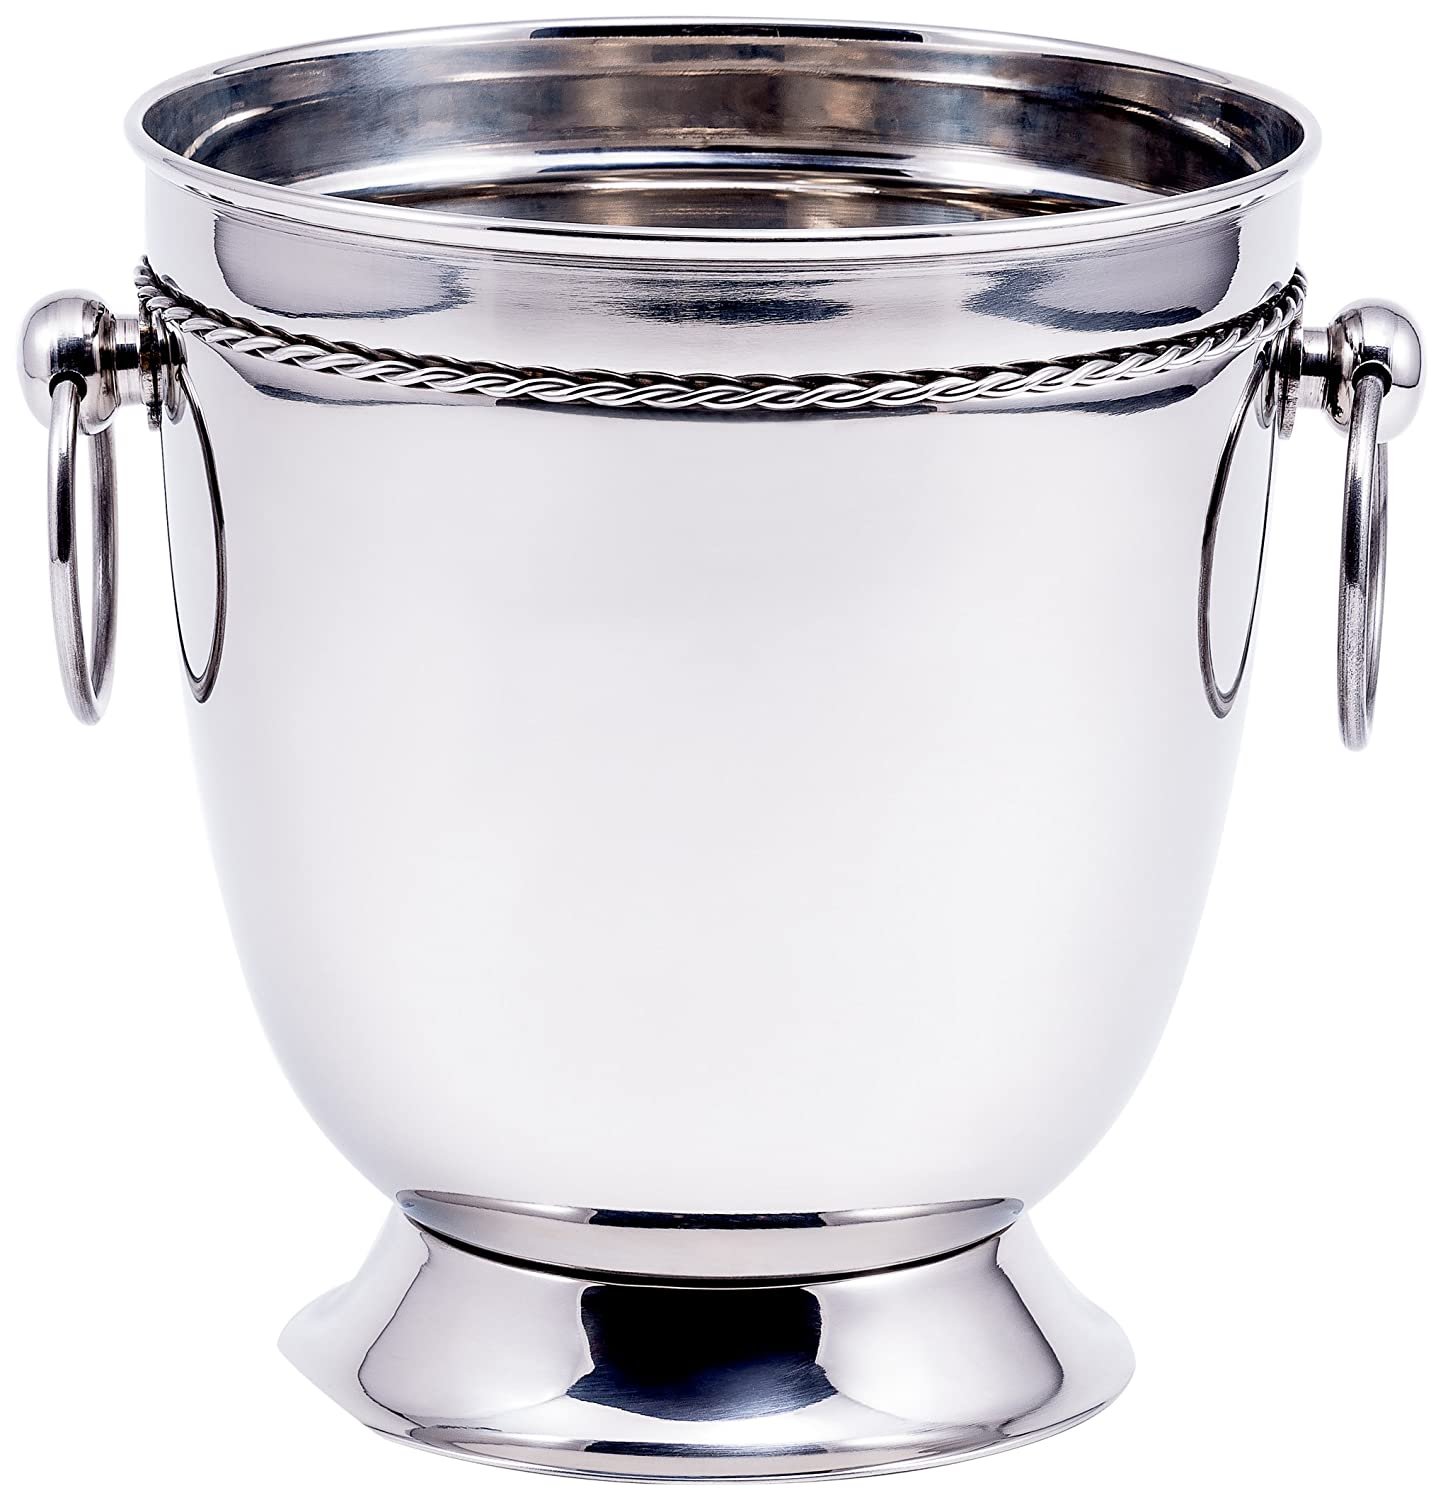 Old Dutch International Champagne Bucket, Stainless Steel 1122